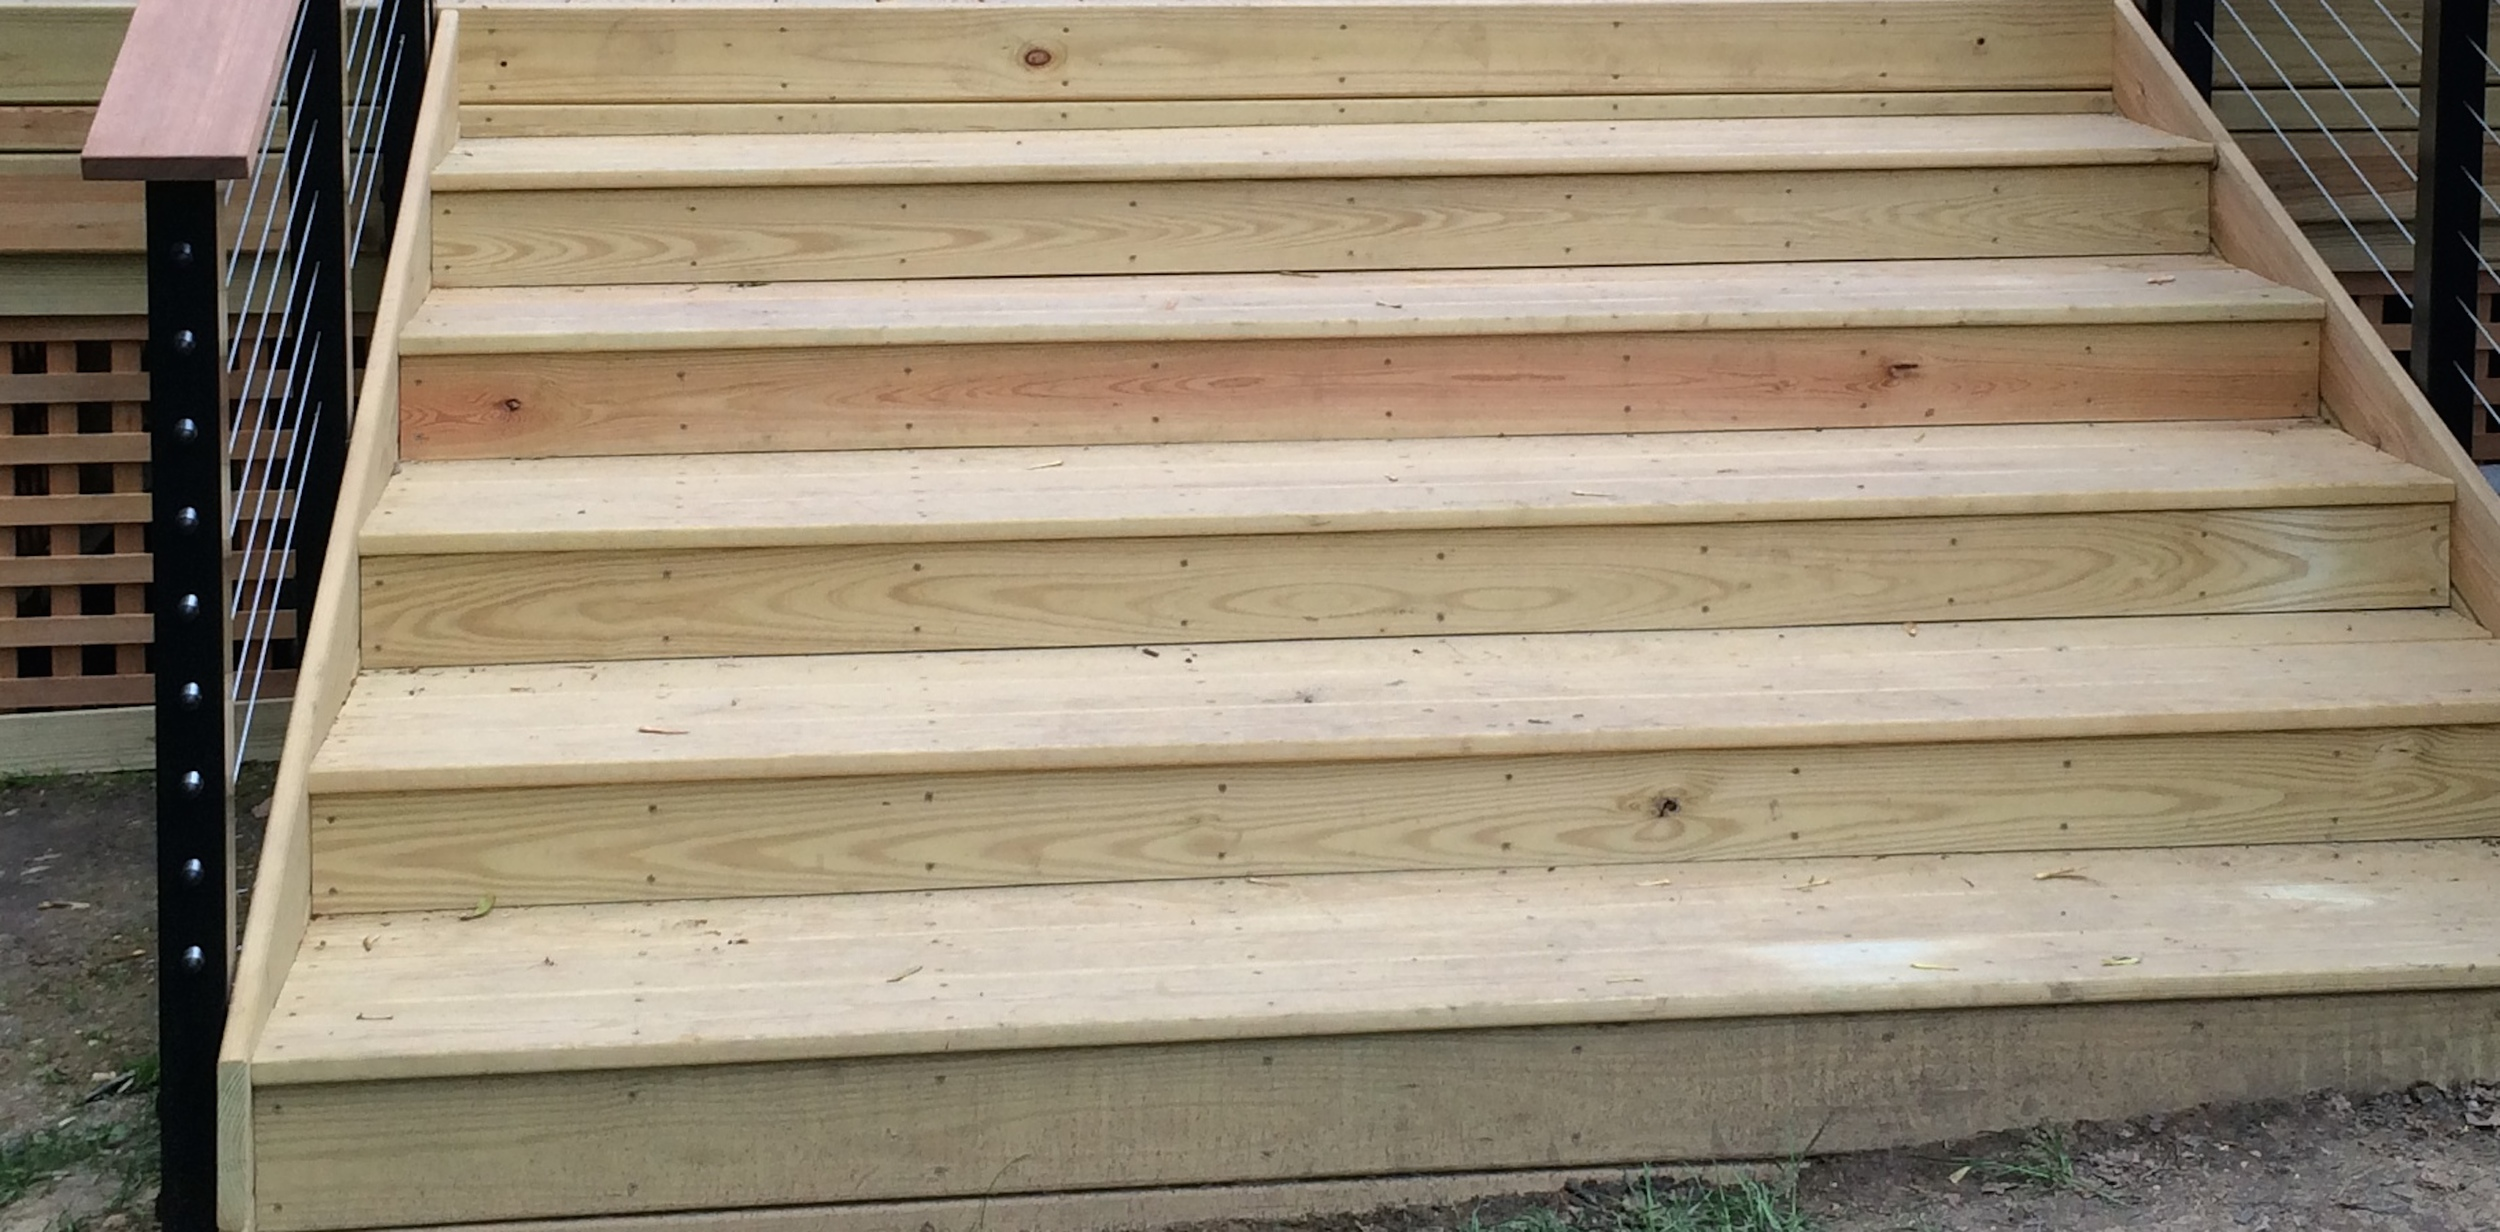 Here you see the steps up to your deck.  Note how the steps are cut to fit the slope of your yard.  Exactly what you would expect from a craftsman.